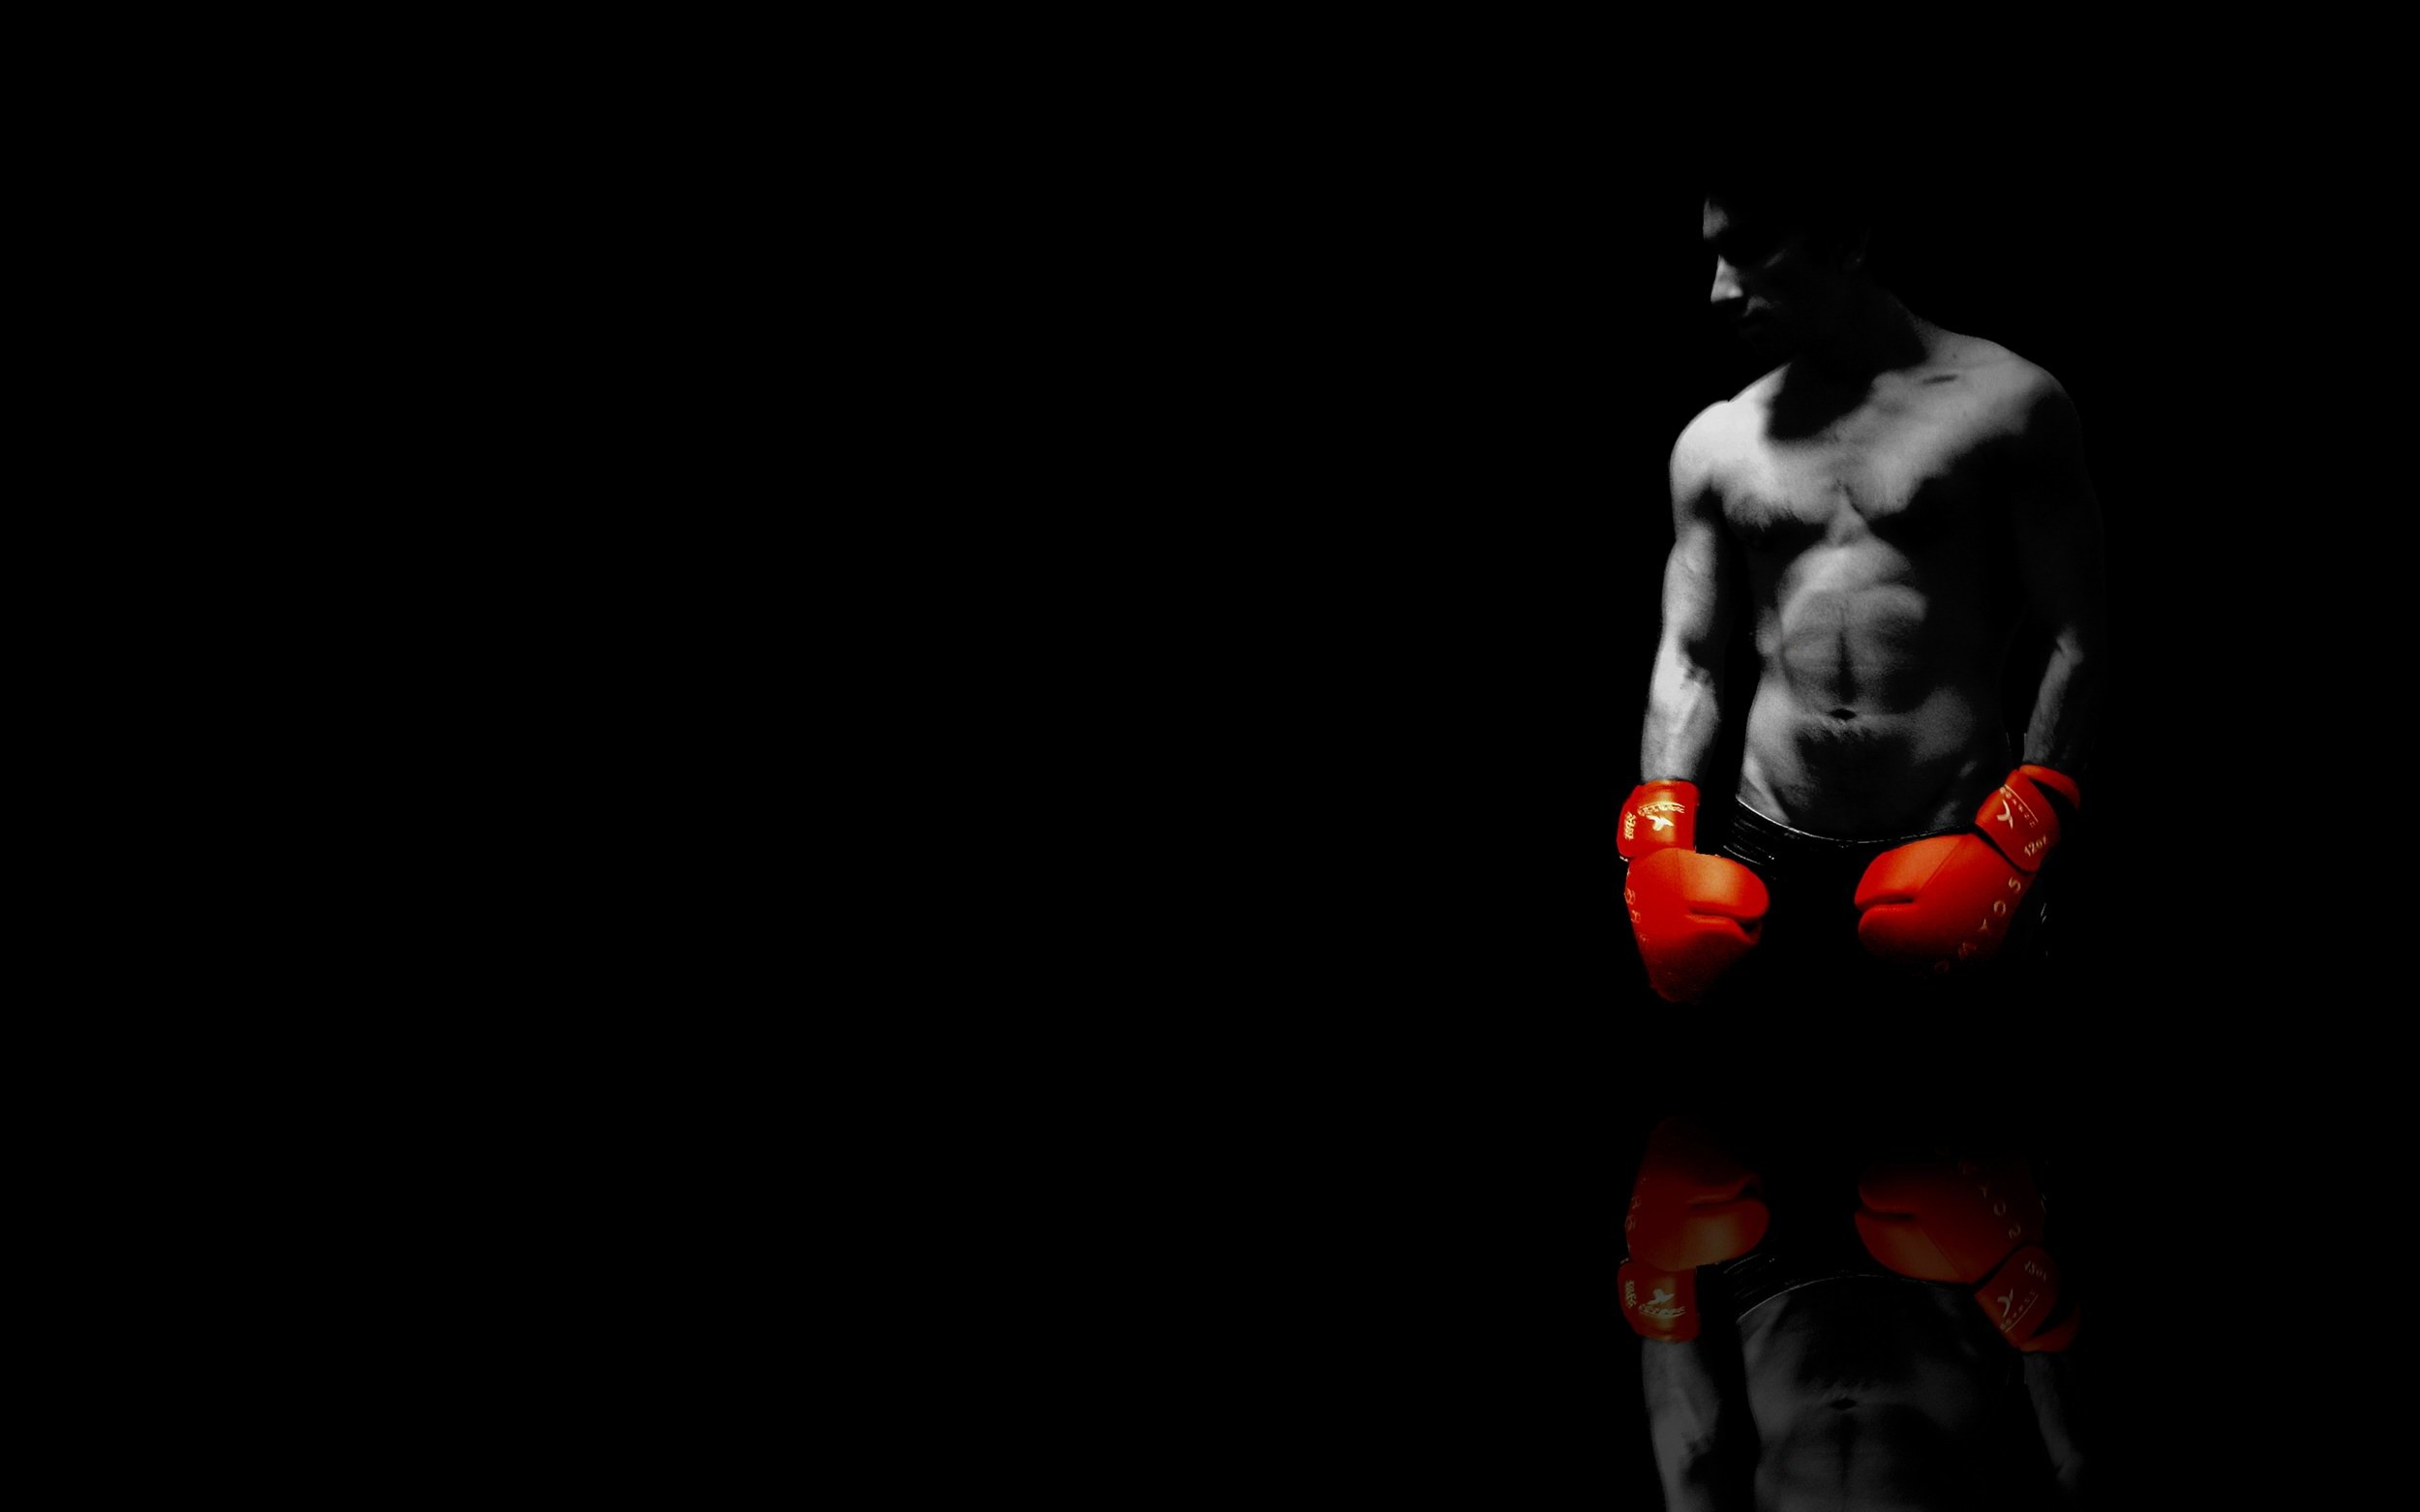 Sport Wallpaper Boxing: Boxing Wallpapers HD (68+ Images